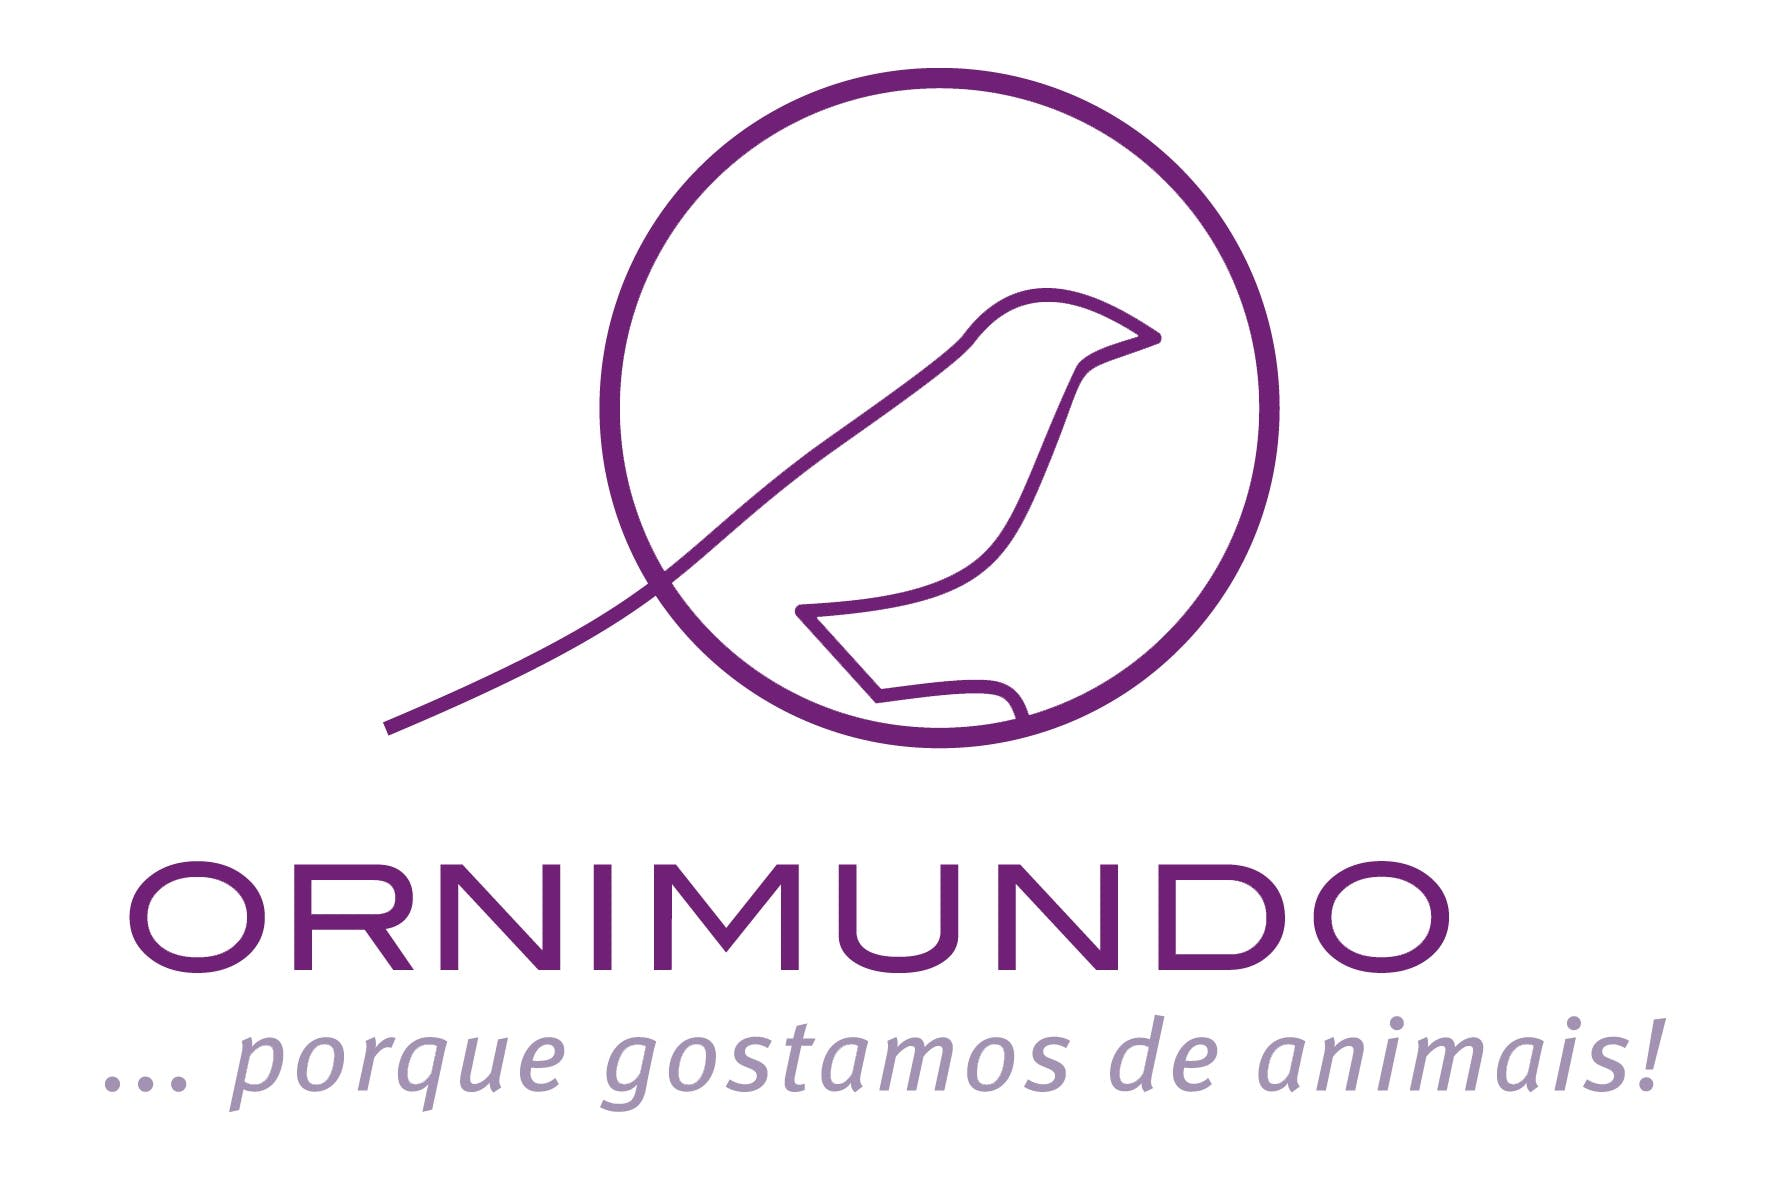 ornimundo_logo final [Converted]